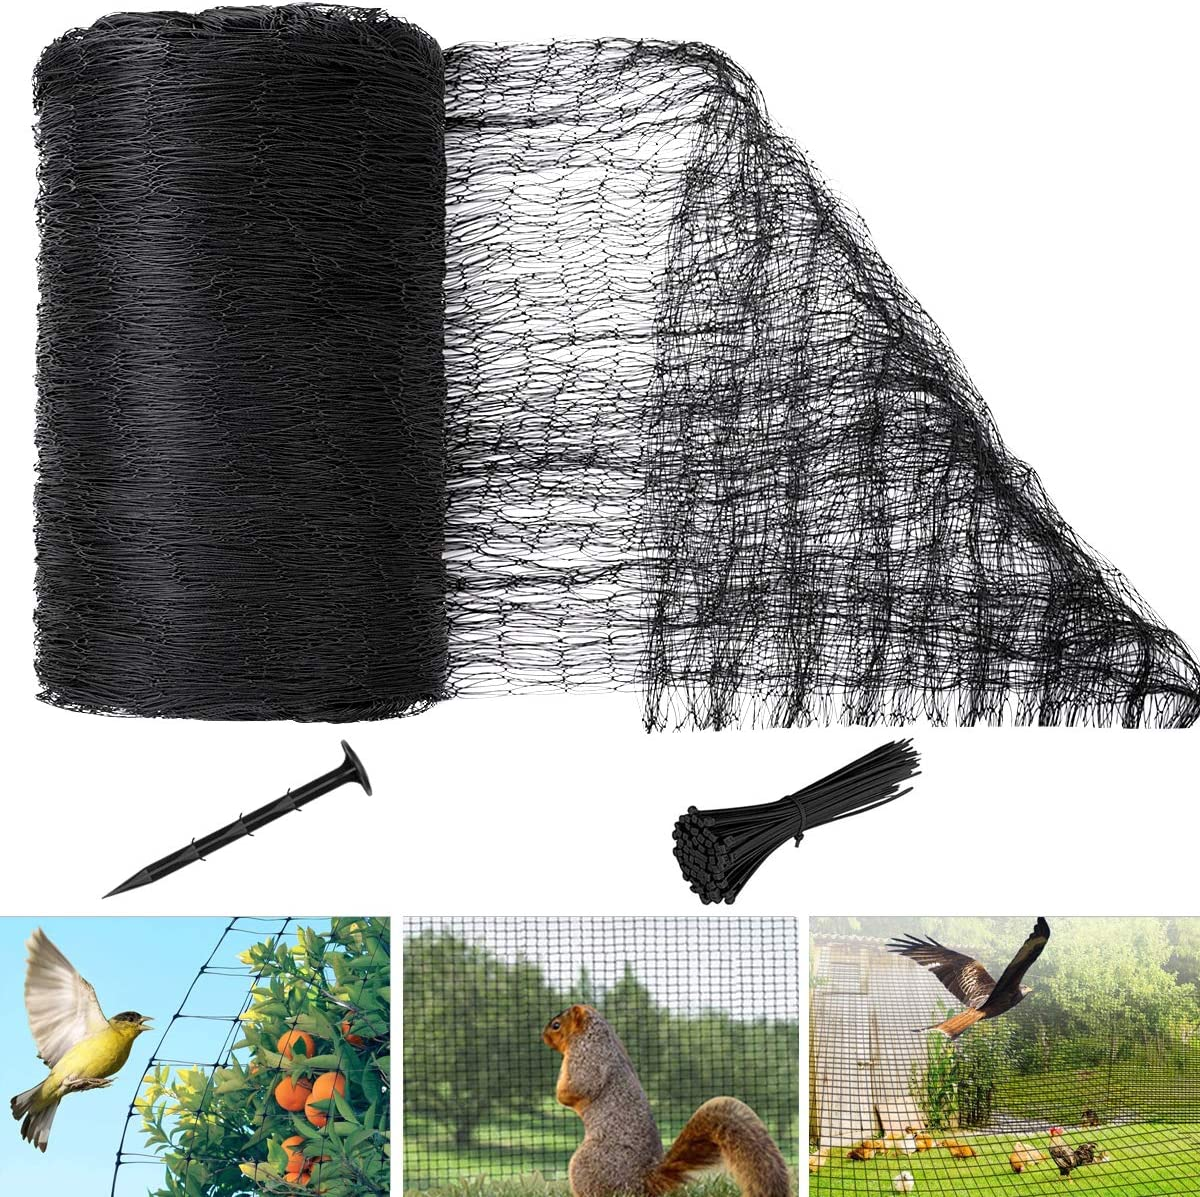 OPOLEMIN Bird Netting, 24.6' X 49.2' Garden Netting Mesh Protect Fruits Trees Plant & Chicken Coop, Reusable Deer Fence Netting Lasting Protection Garden Orchard Against Birds Deer and Other Animals